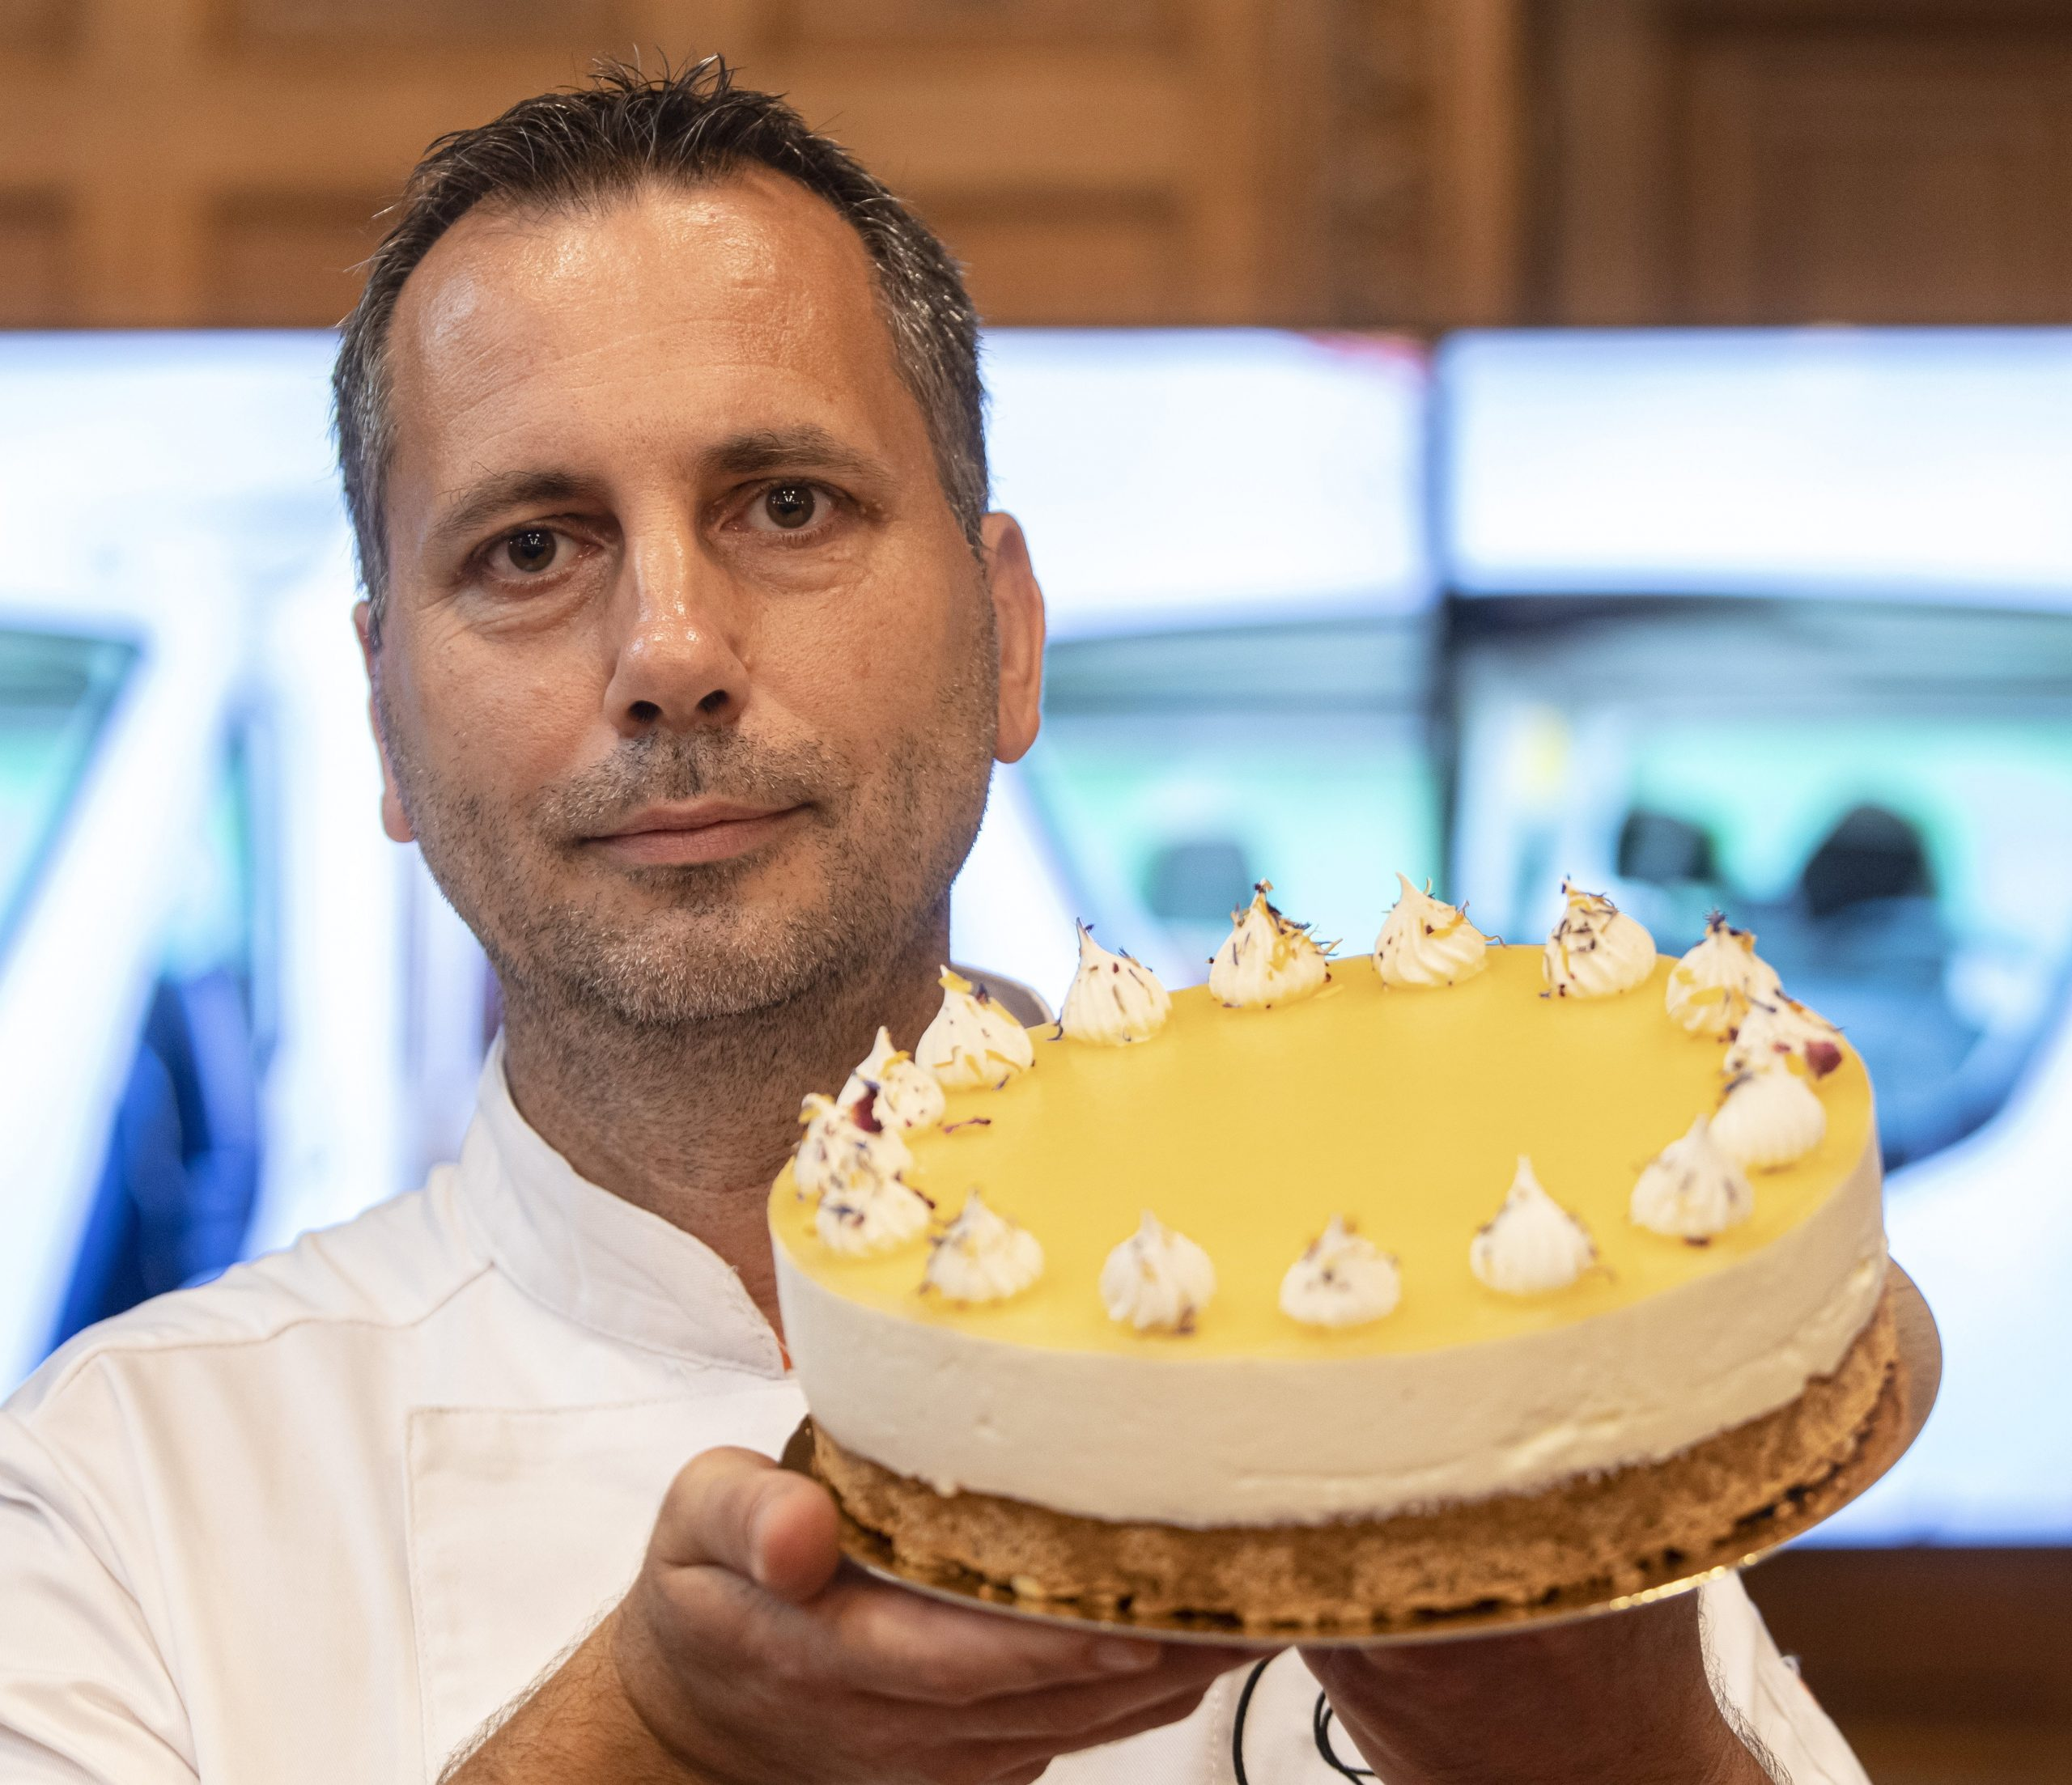 A Sweet Welcome to St Stephen's Day - Hungary's Cakes of the Year